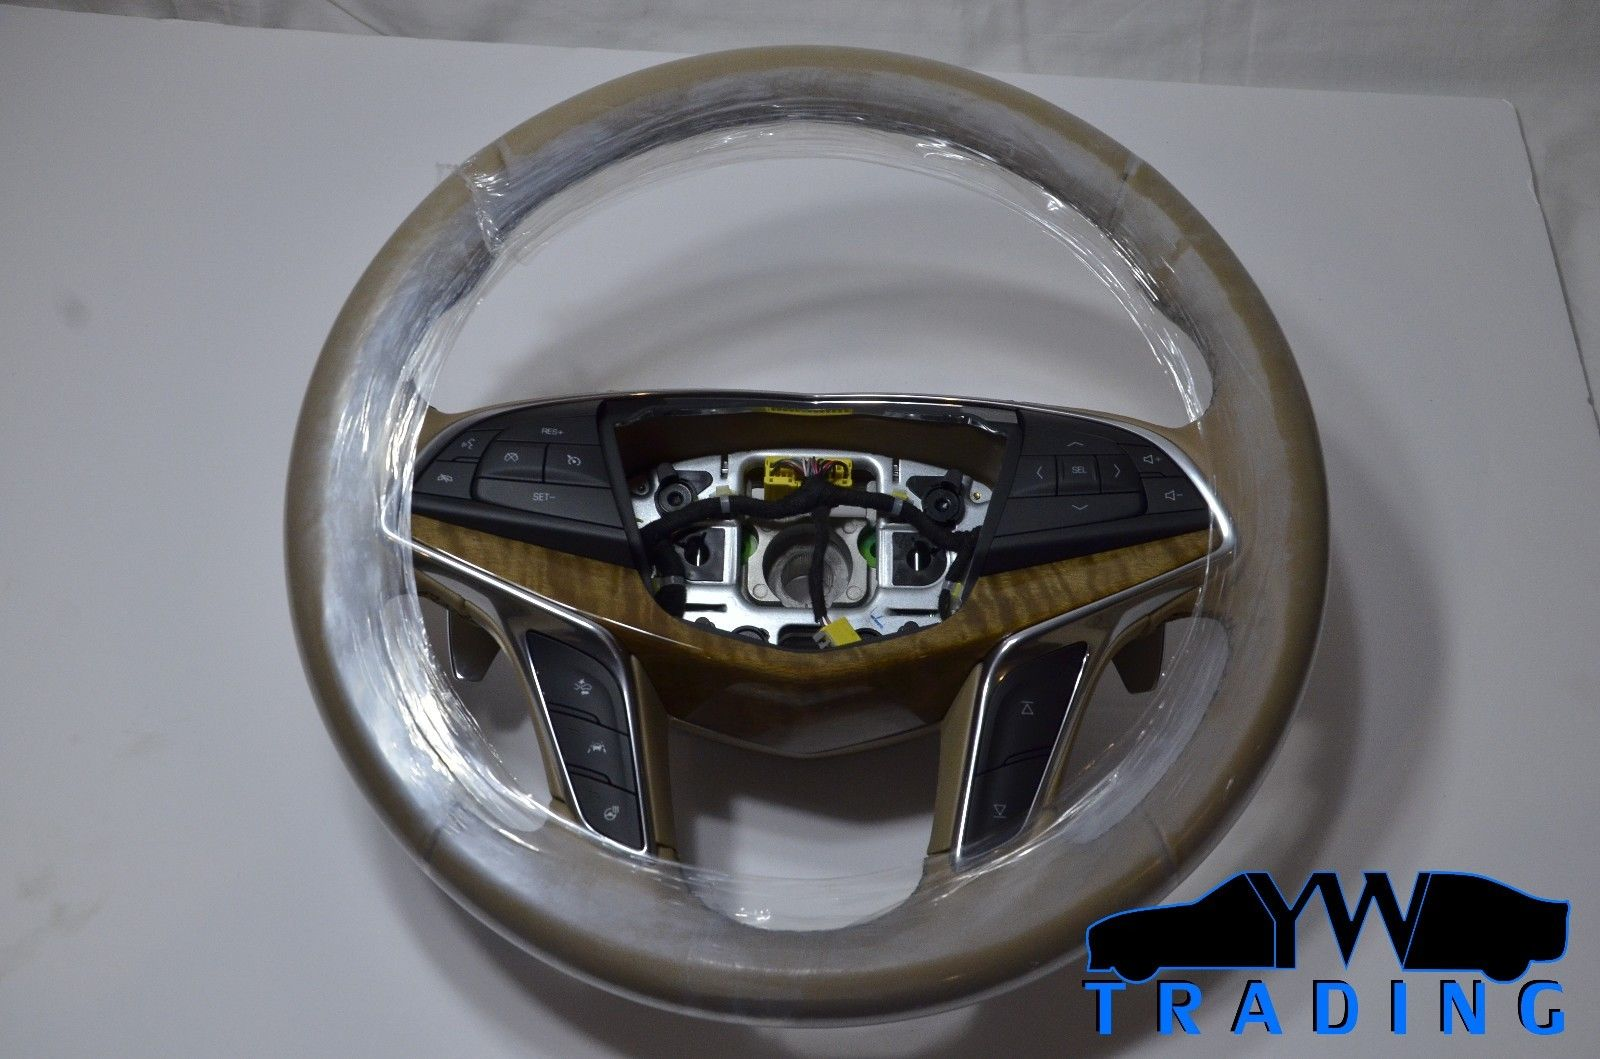 2016 - 2017 CADILLAC CT6 NEW OEM STEERING WHEEL W/ PADDLE SHIFTERS - 84016908